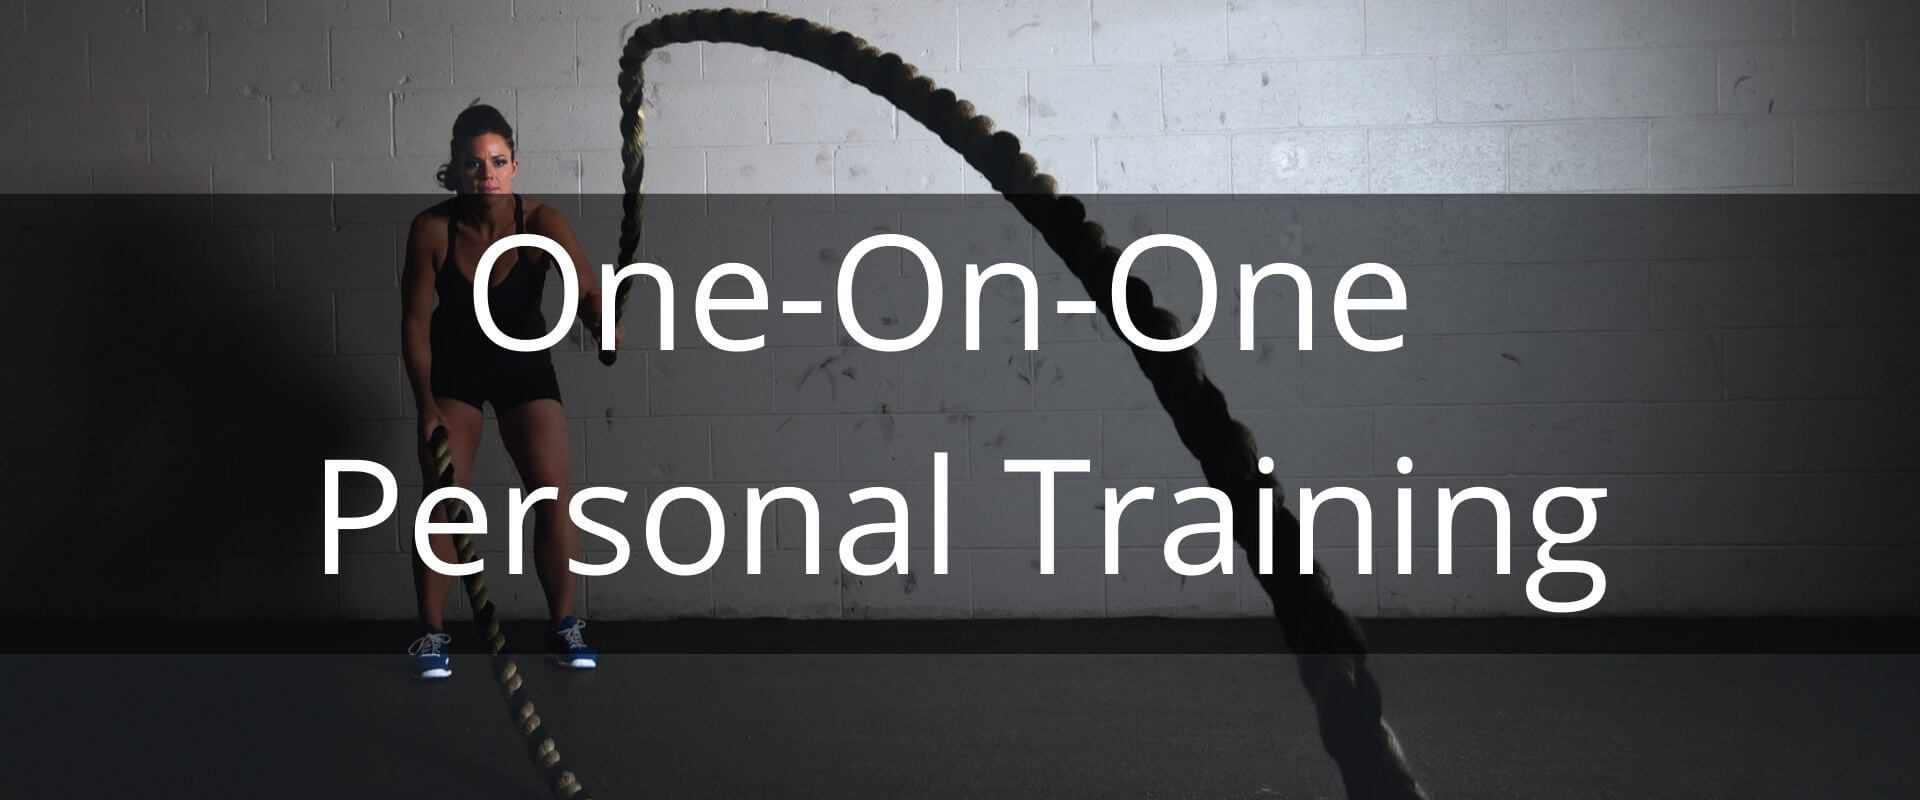 One-On-One Personal Training Thumbnail